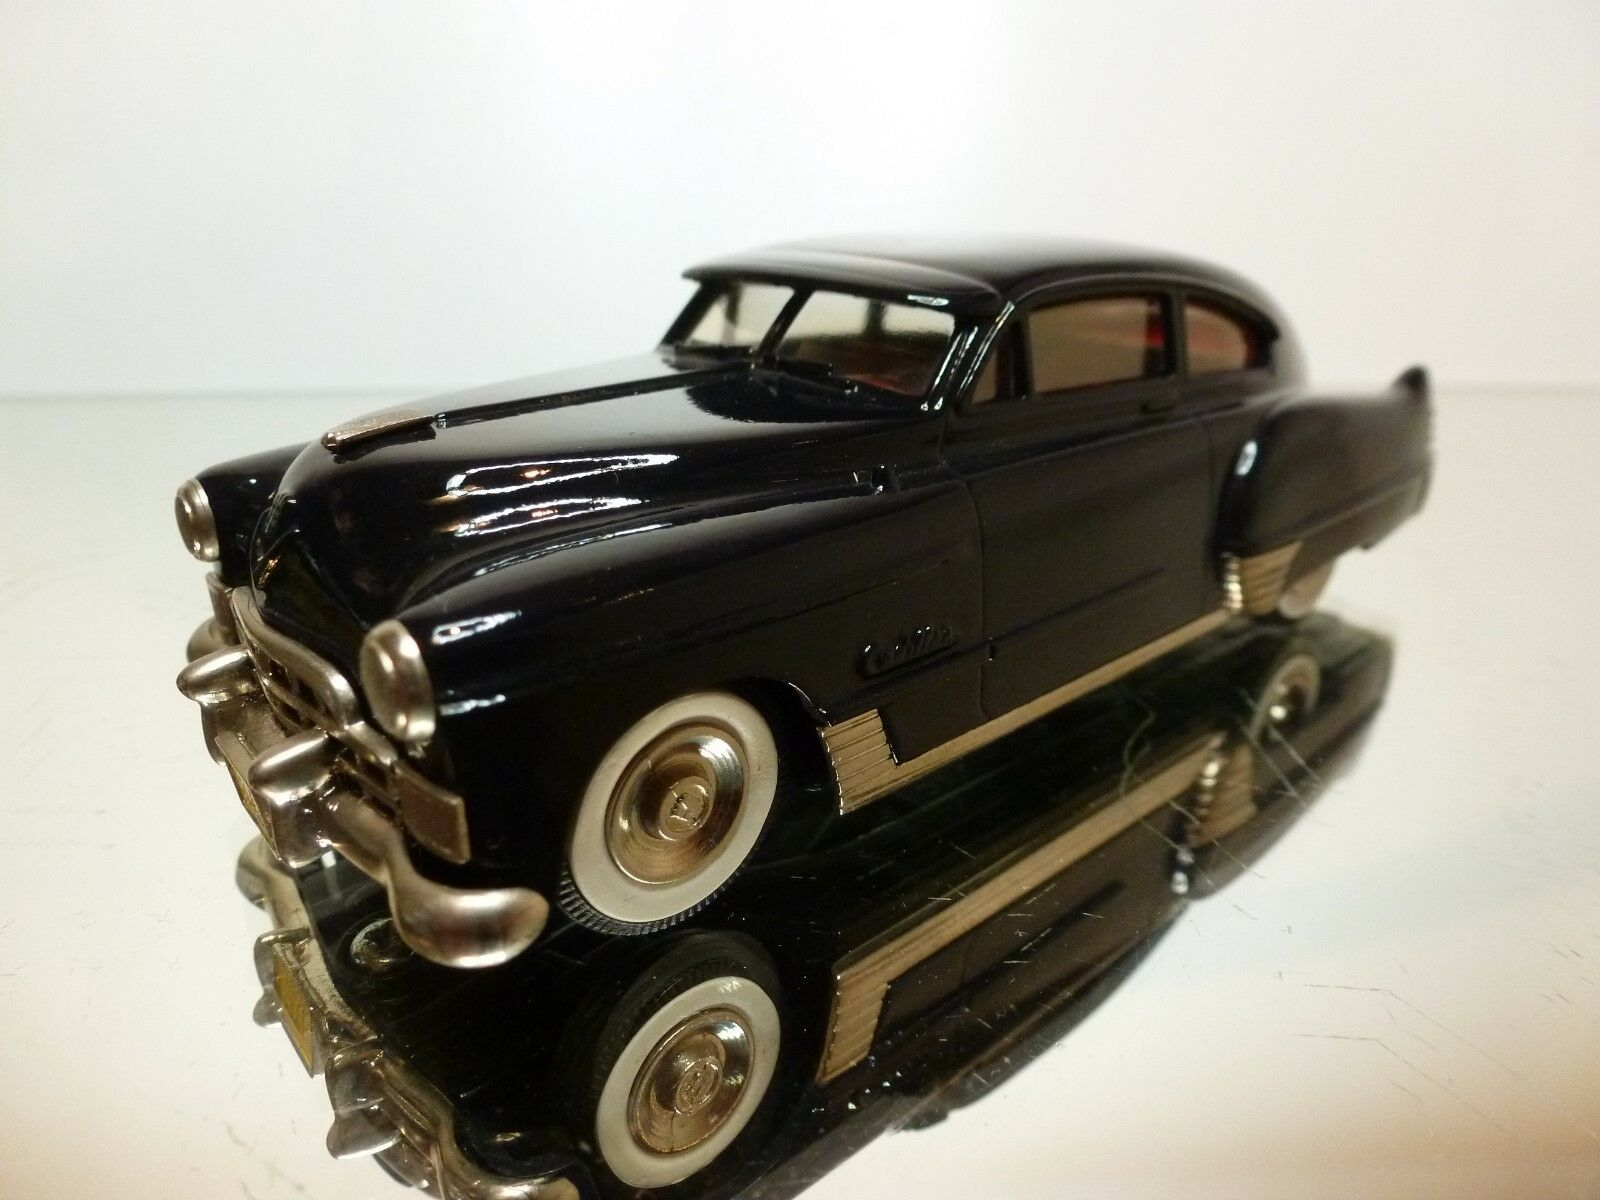 BROOKLIN BRK 40 - CADILLAC FAST BACK COUPE 1948 - 1 43 - EXCELLENT CODITION  - 7